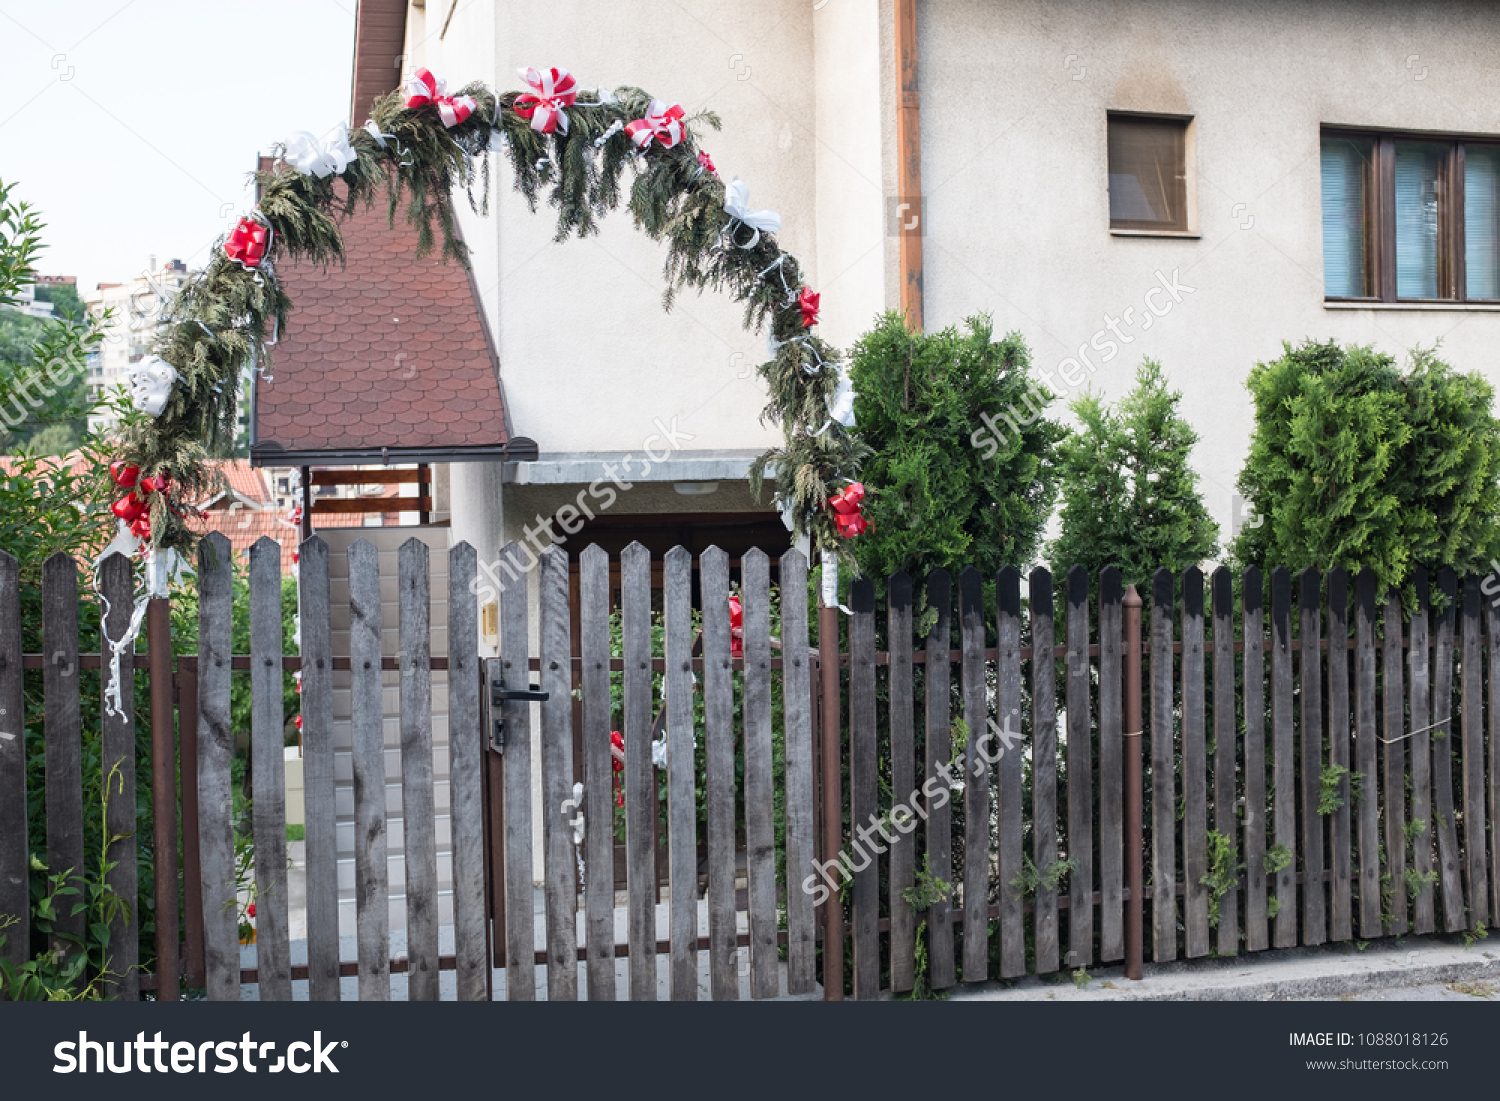 Decorated Gate Wedding Day Decoration Flower Stock Photo Edit Now 1088018126